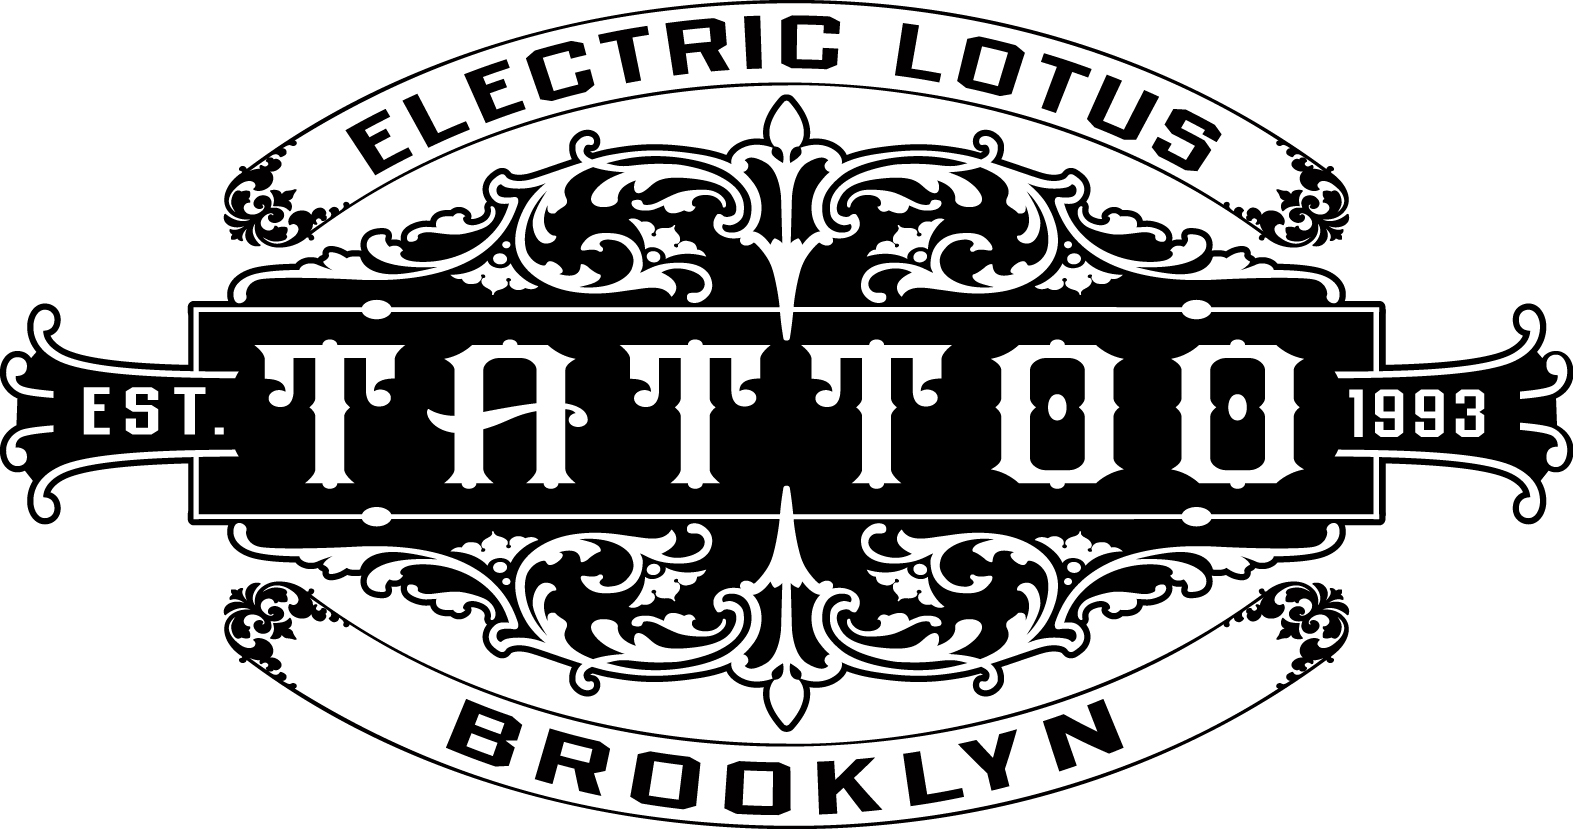 Electric Lotus Tattoo Brooklyn